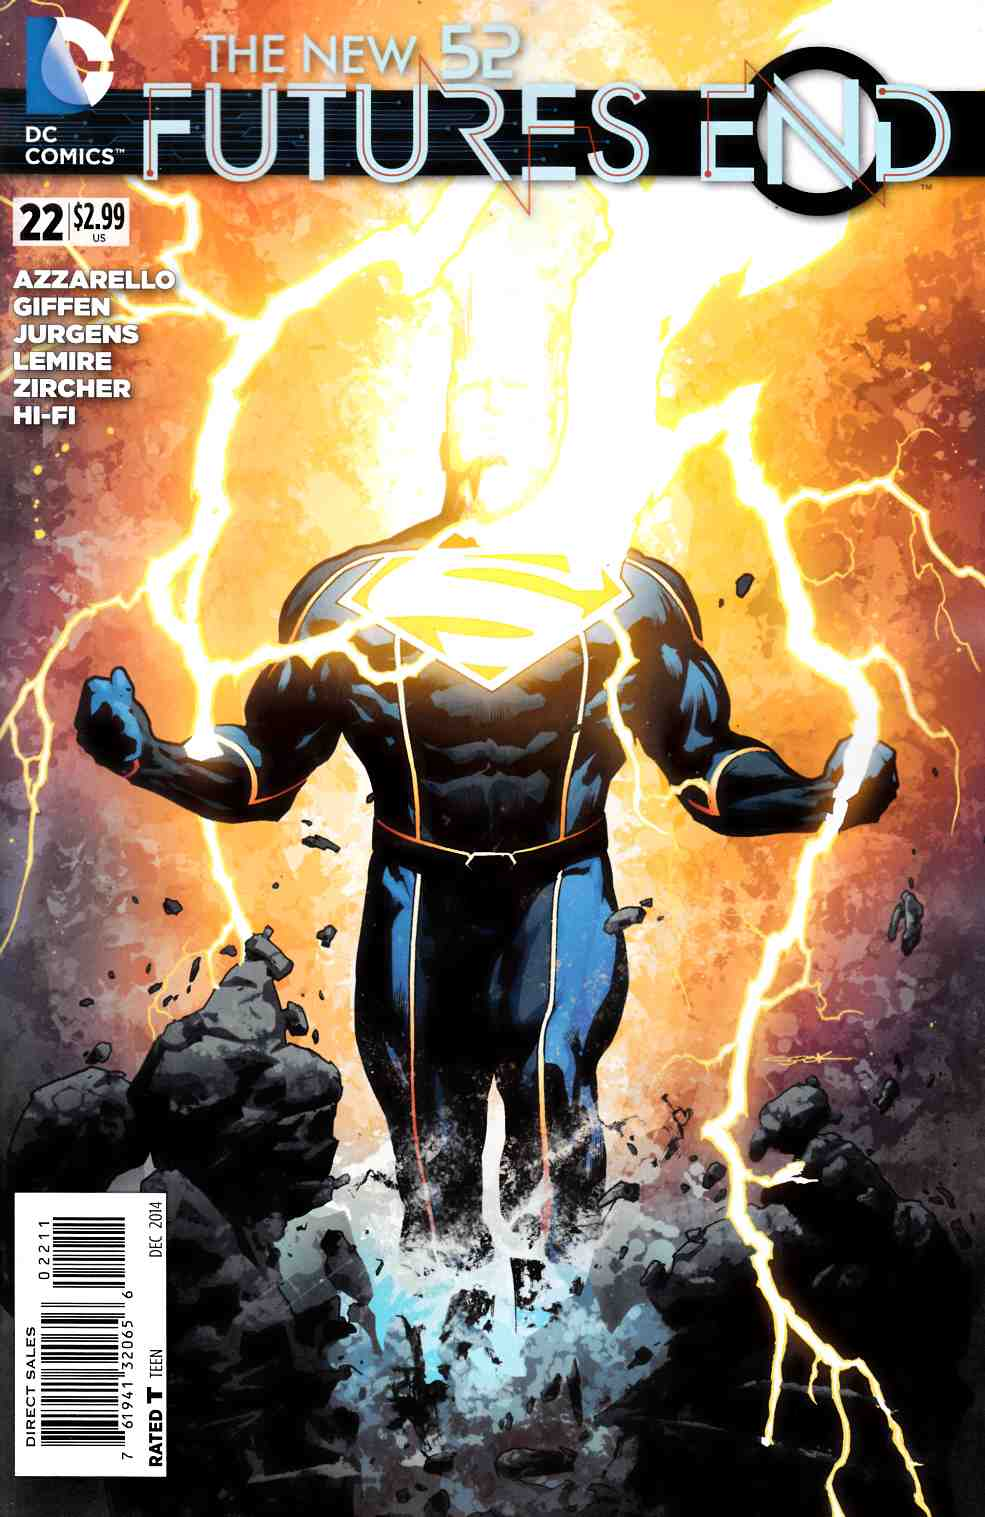 New 52 Futures End #22 (Weekly) [DC Comic] THUMBNAIL